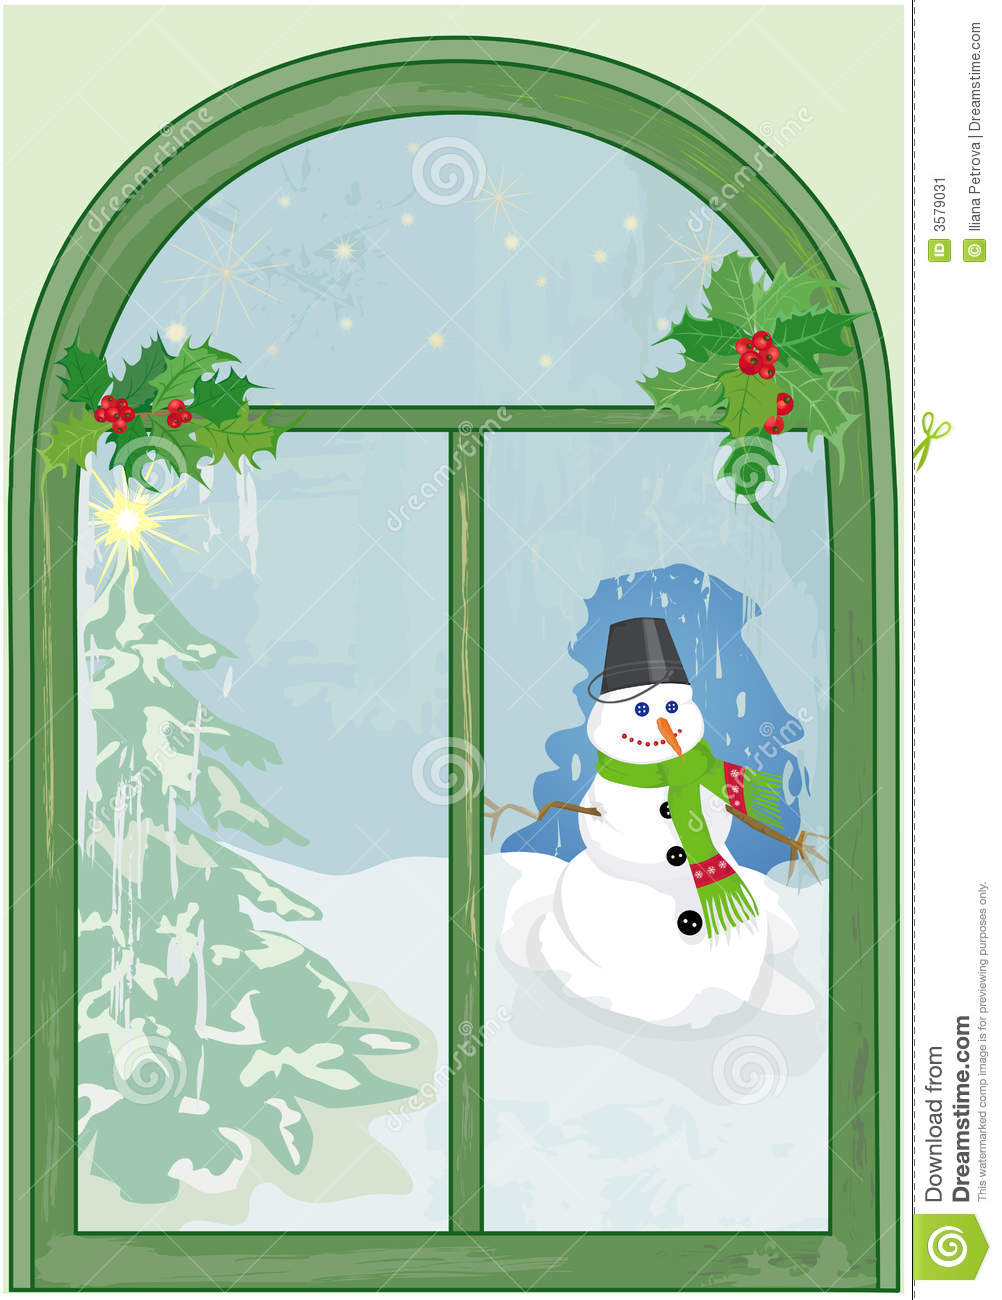 Green windows clipart - Clipground for Outside Window Clipart  29jwn